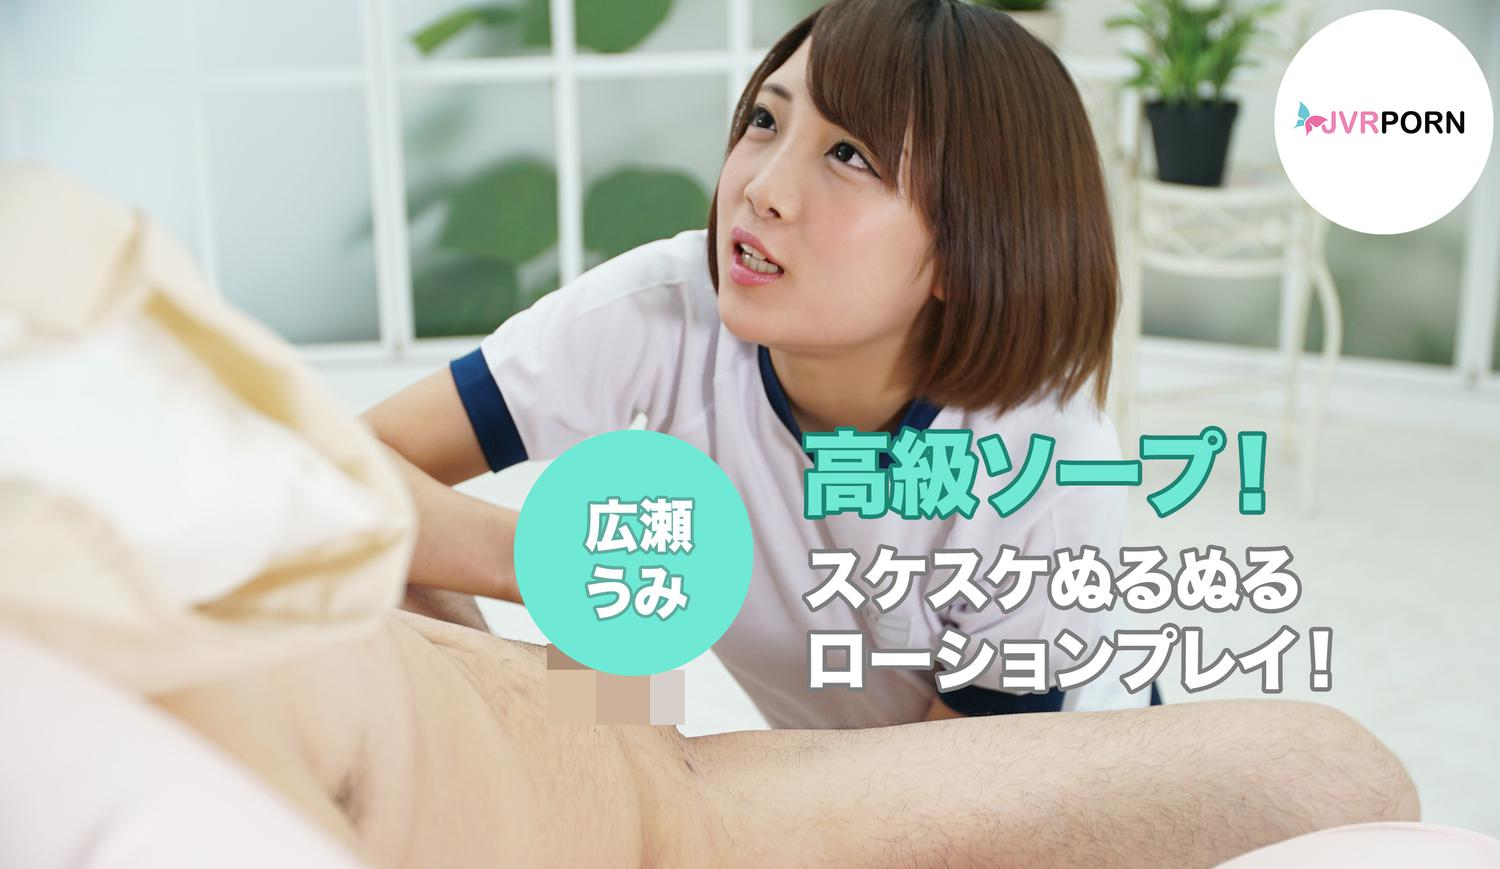 JVRPORN Japanese Teen likes your dick  VR XXX SITERIP